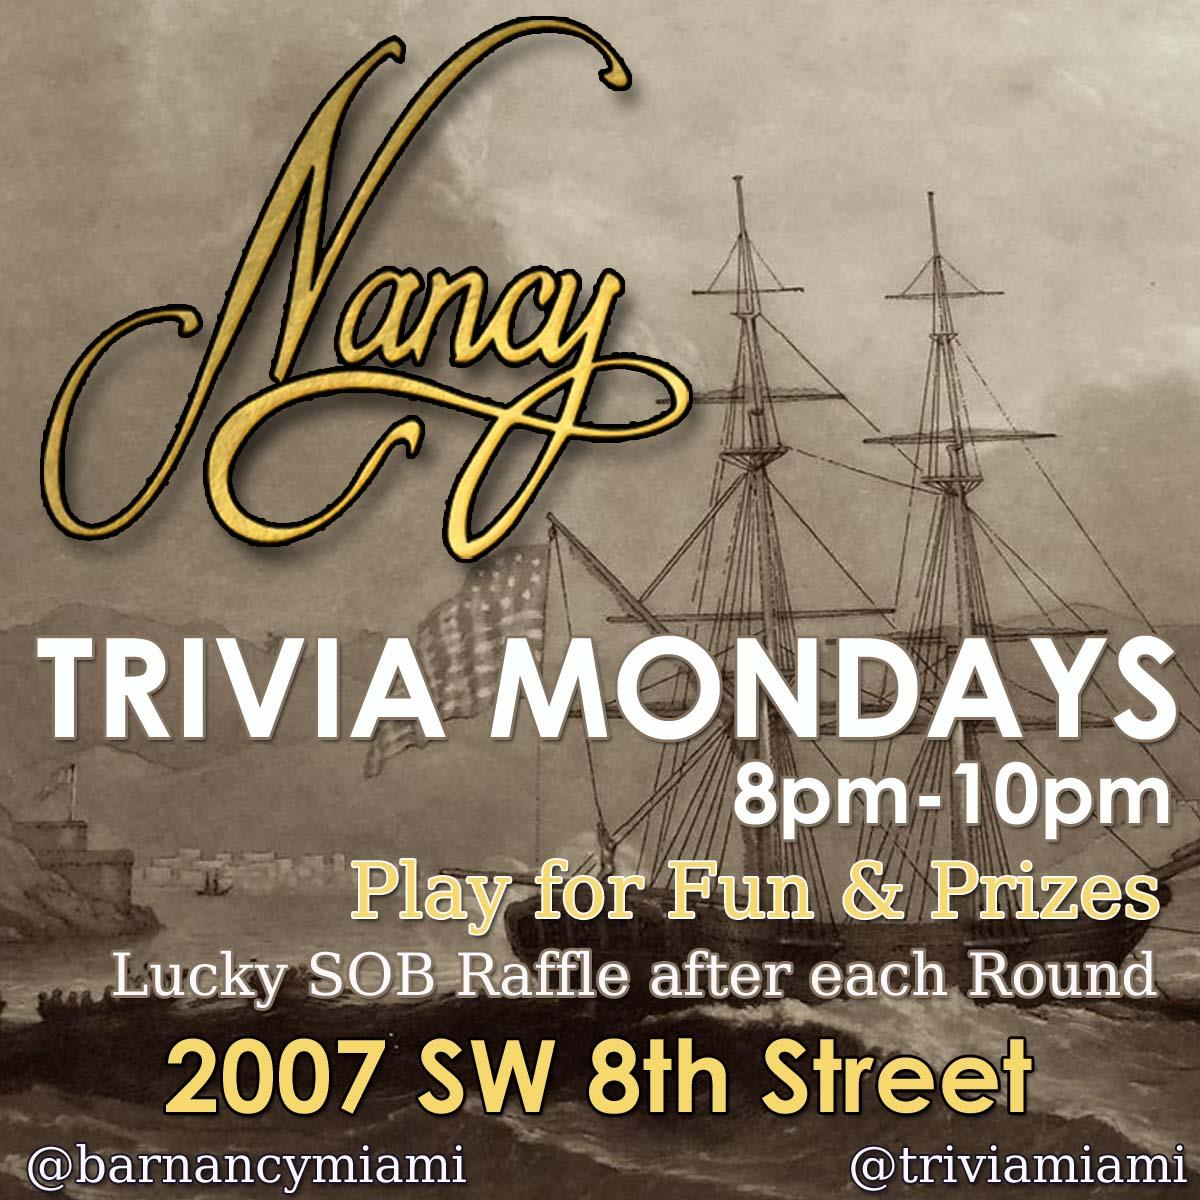 Trivia Mondays at Bar Nancy